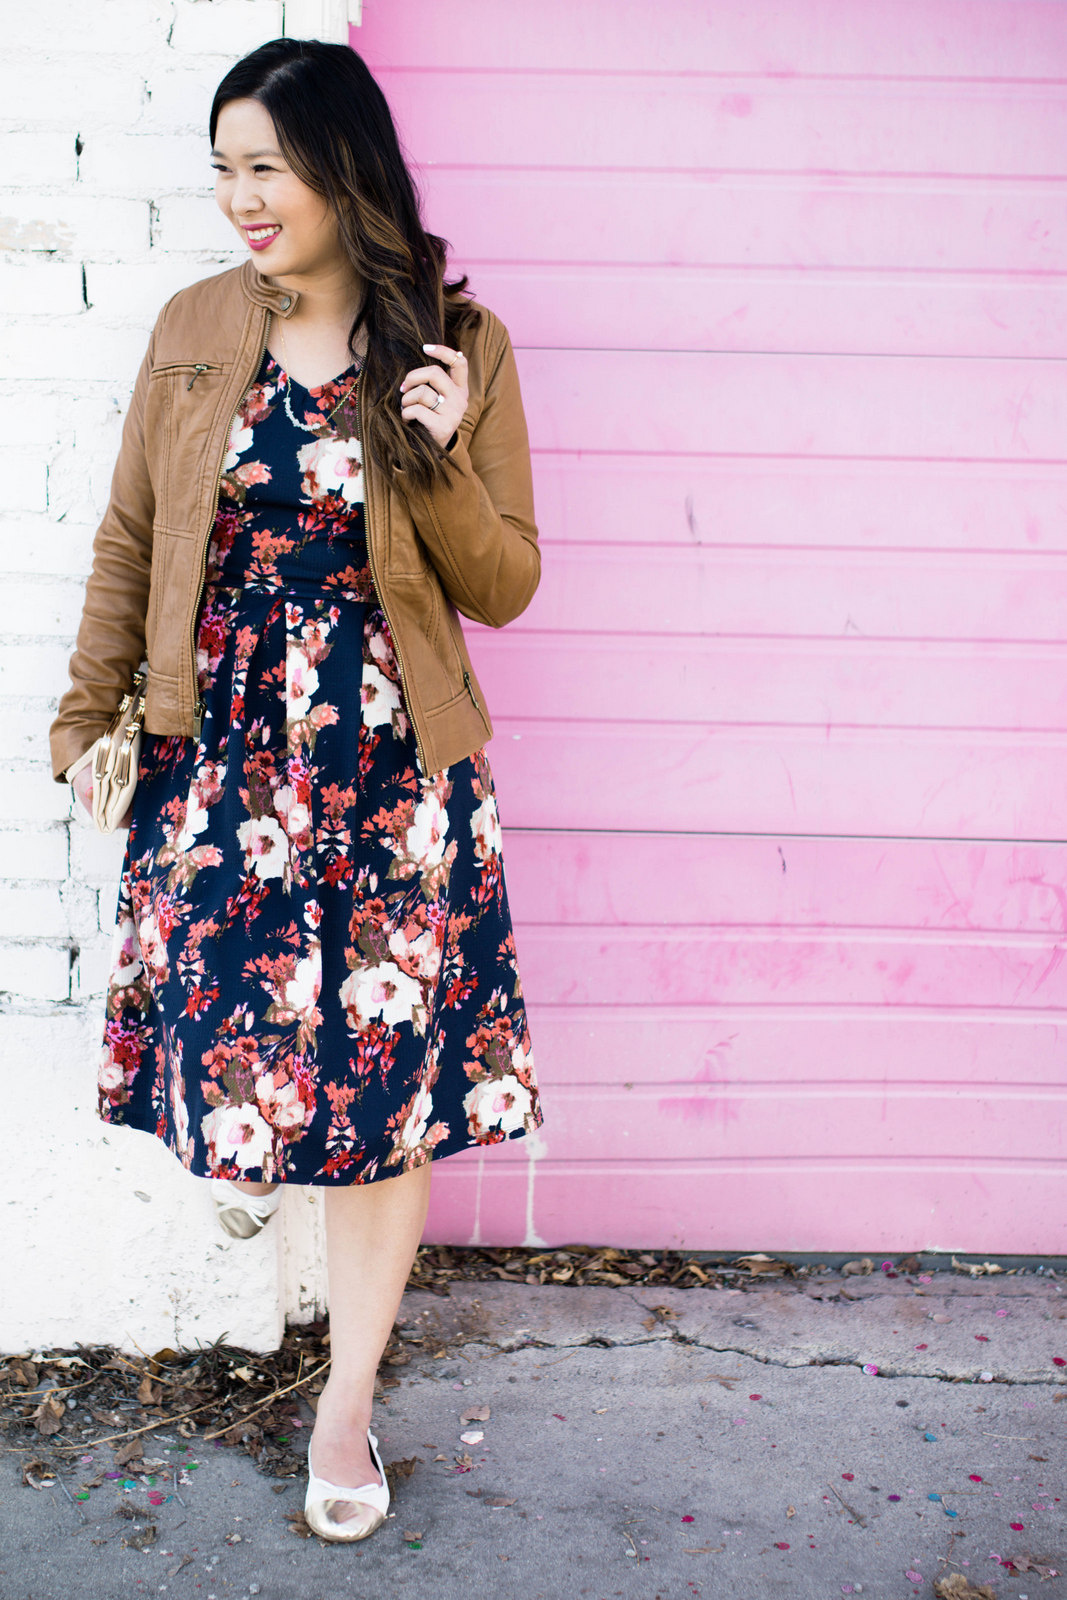 Florals and tan jacket